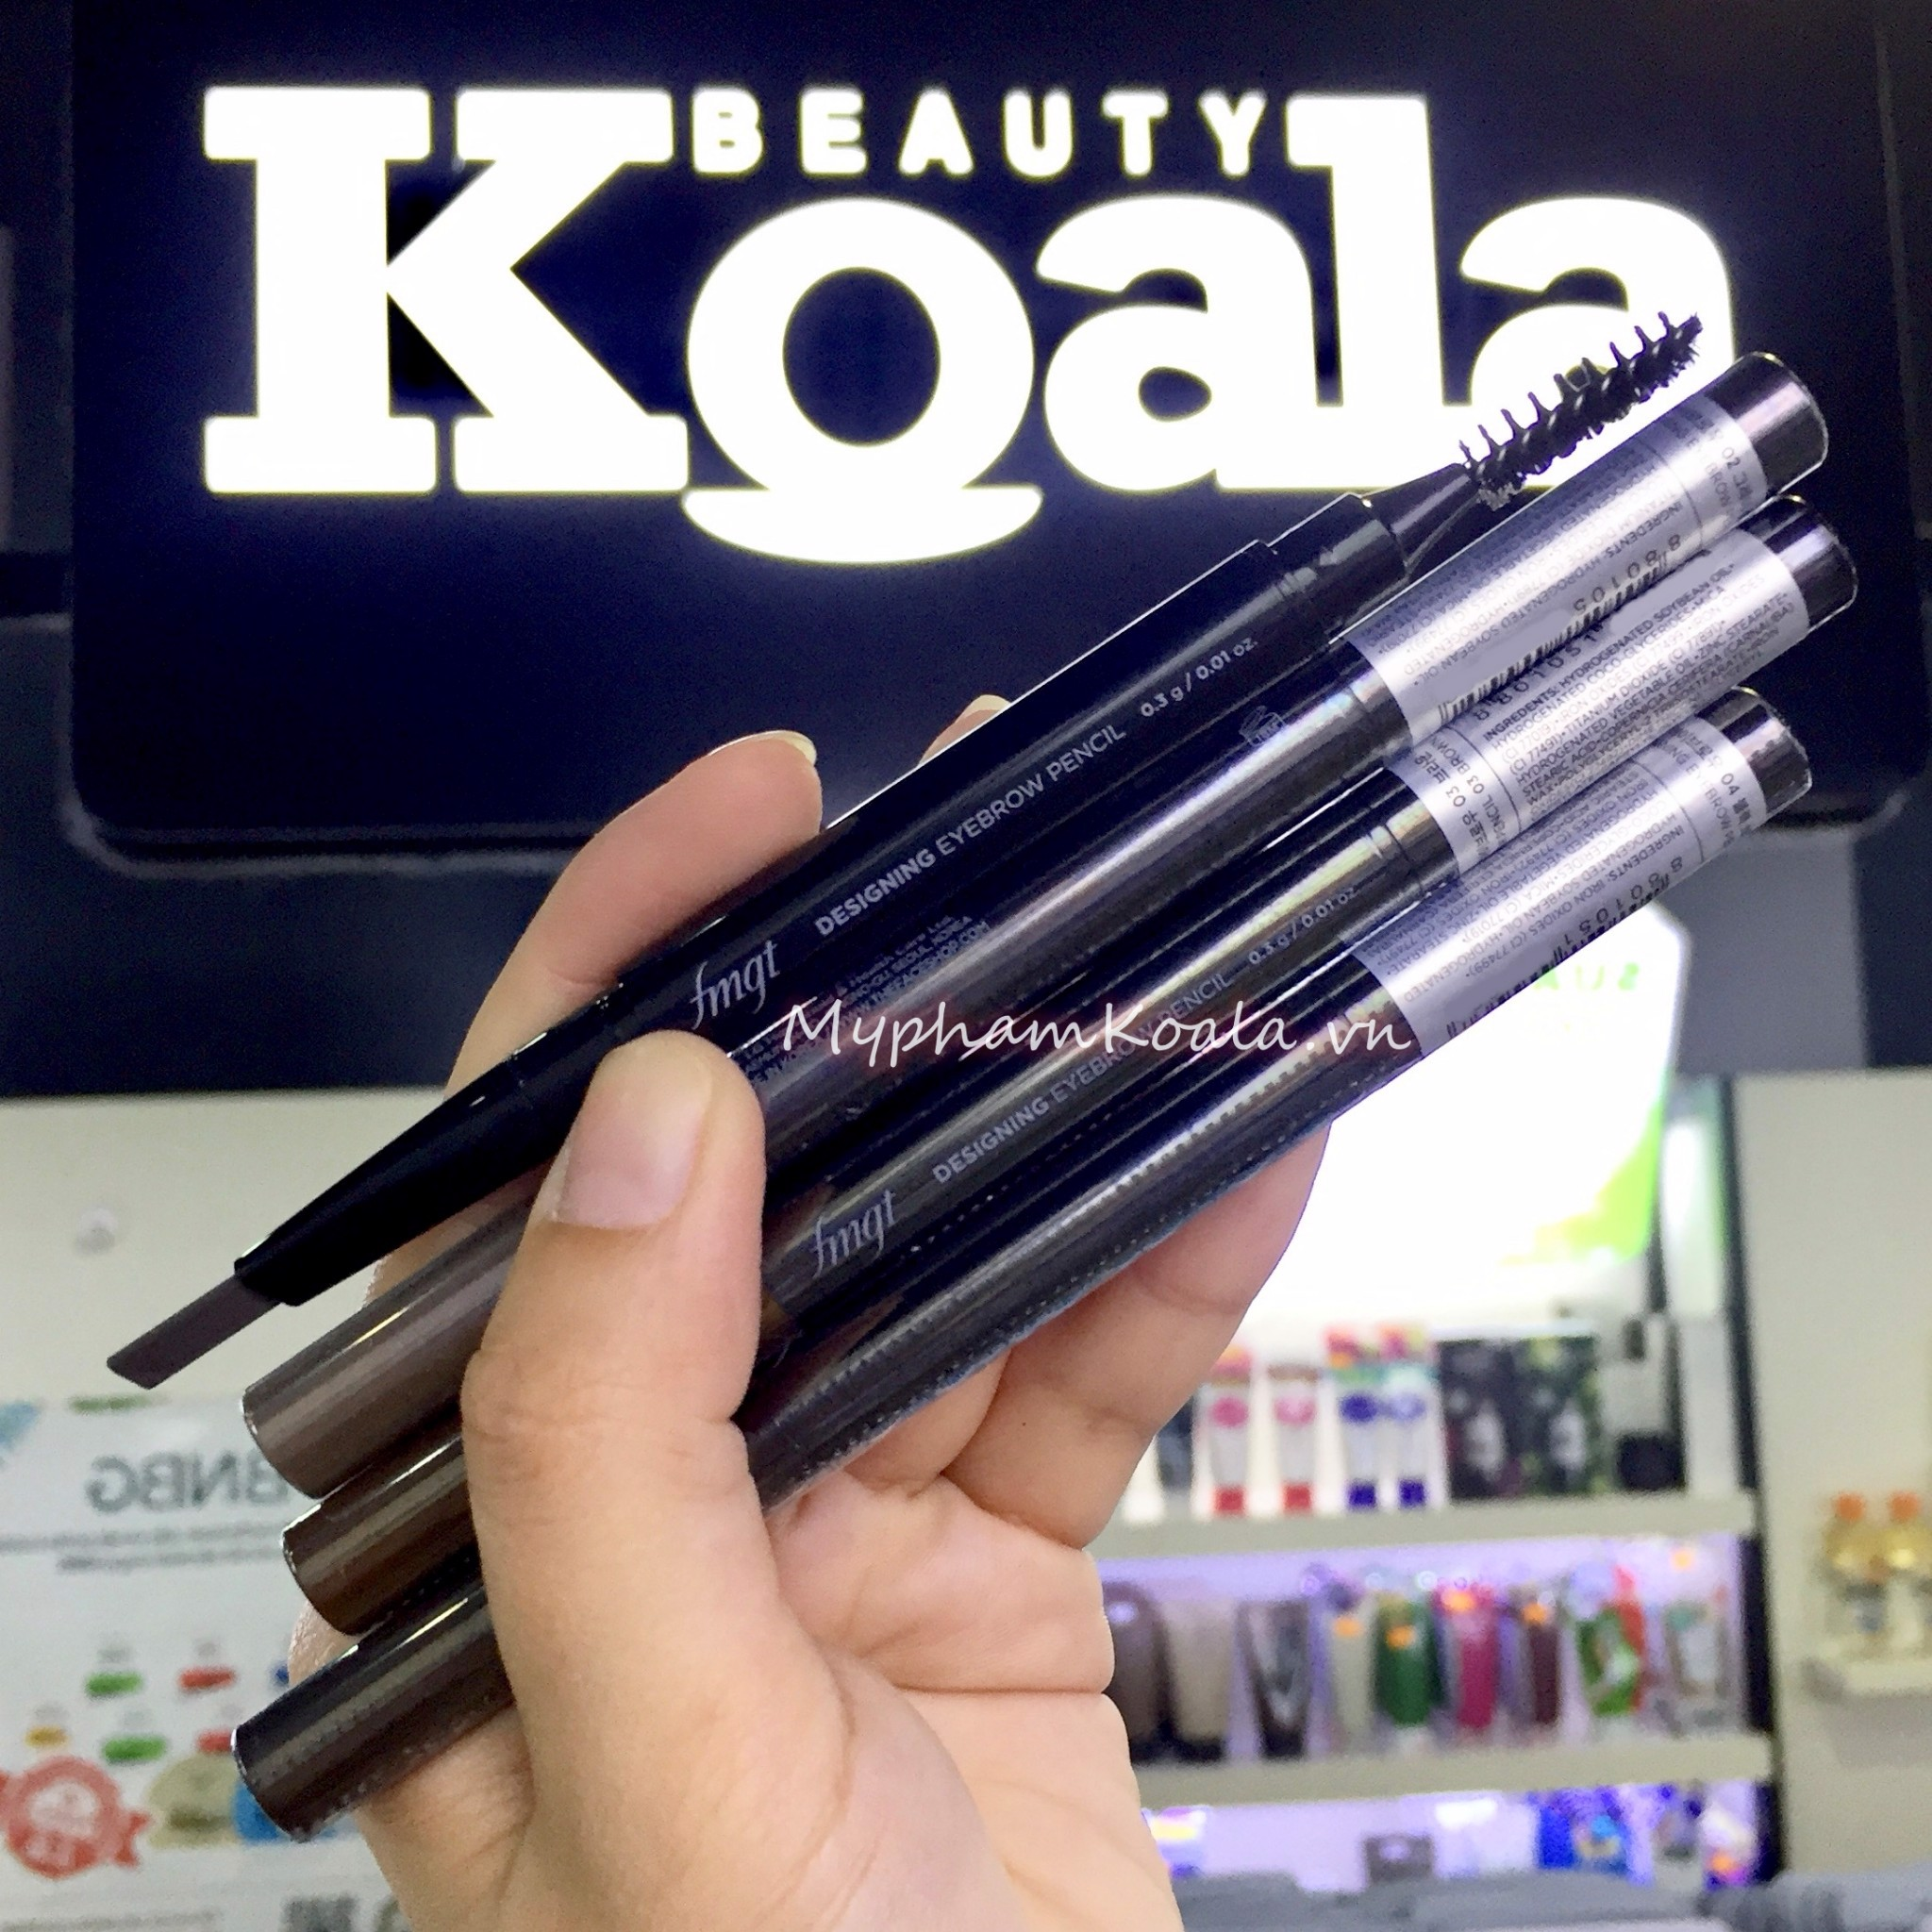 Chì Kẻ Mày The Face Shop fmgt Designing Eyebrow Pencil